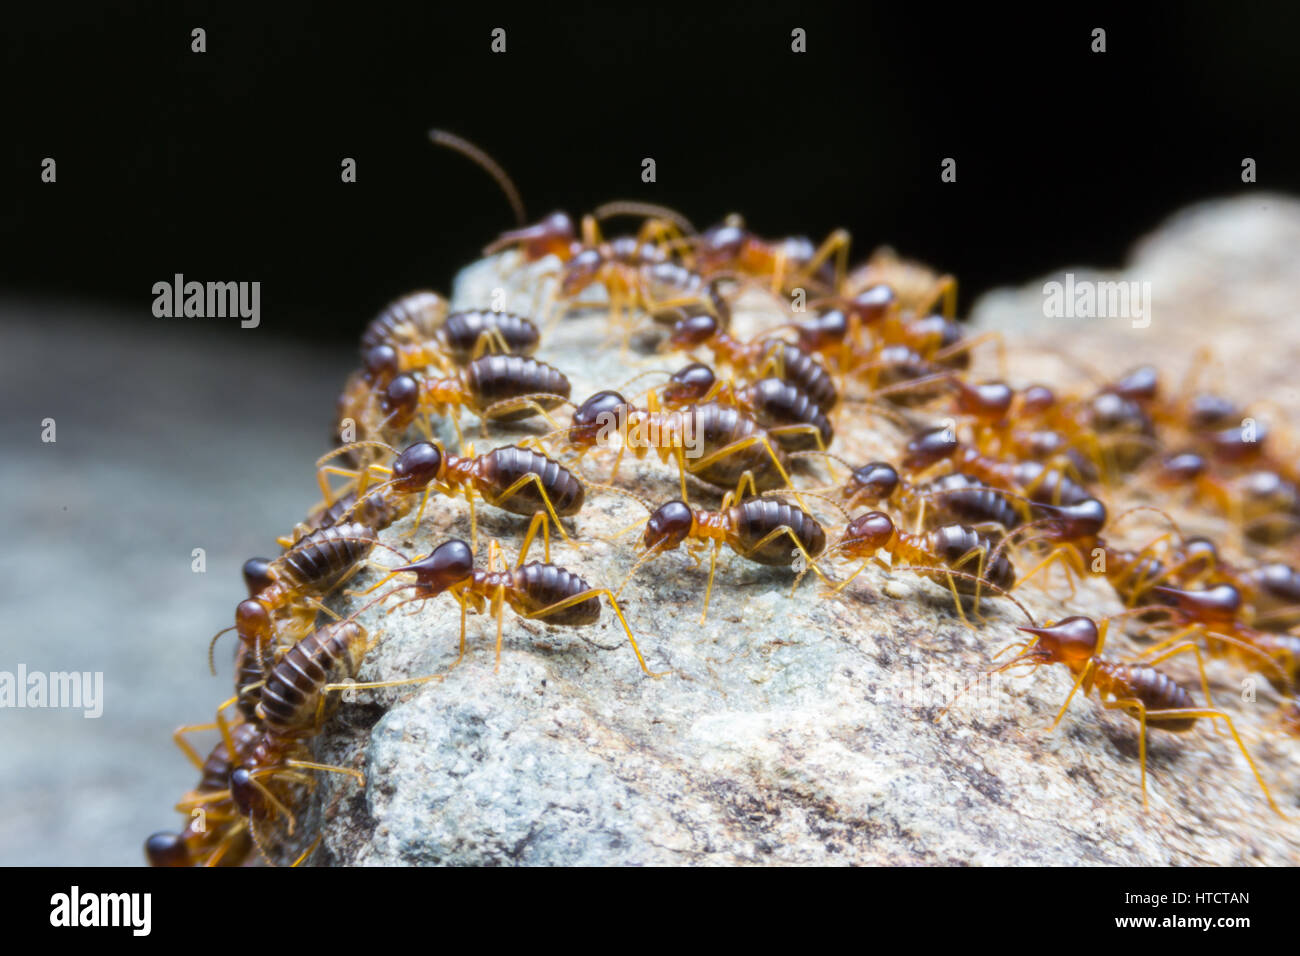 Termites Nests Stockfotos & Termites Nests Bilder Alamy